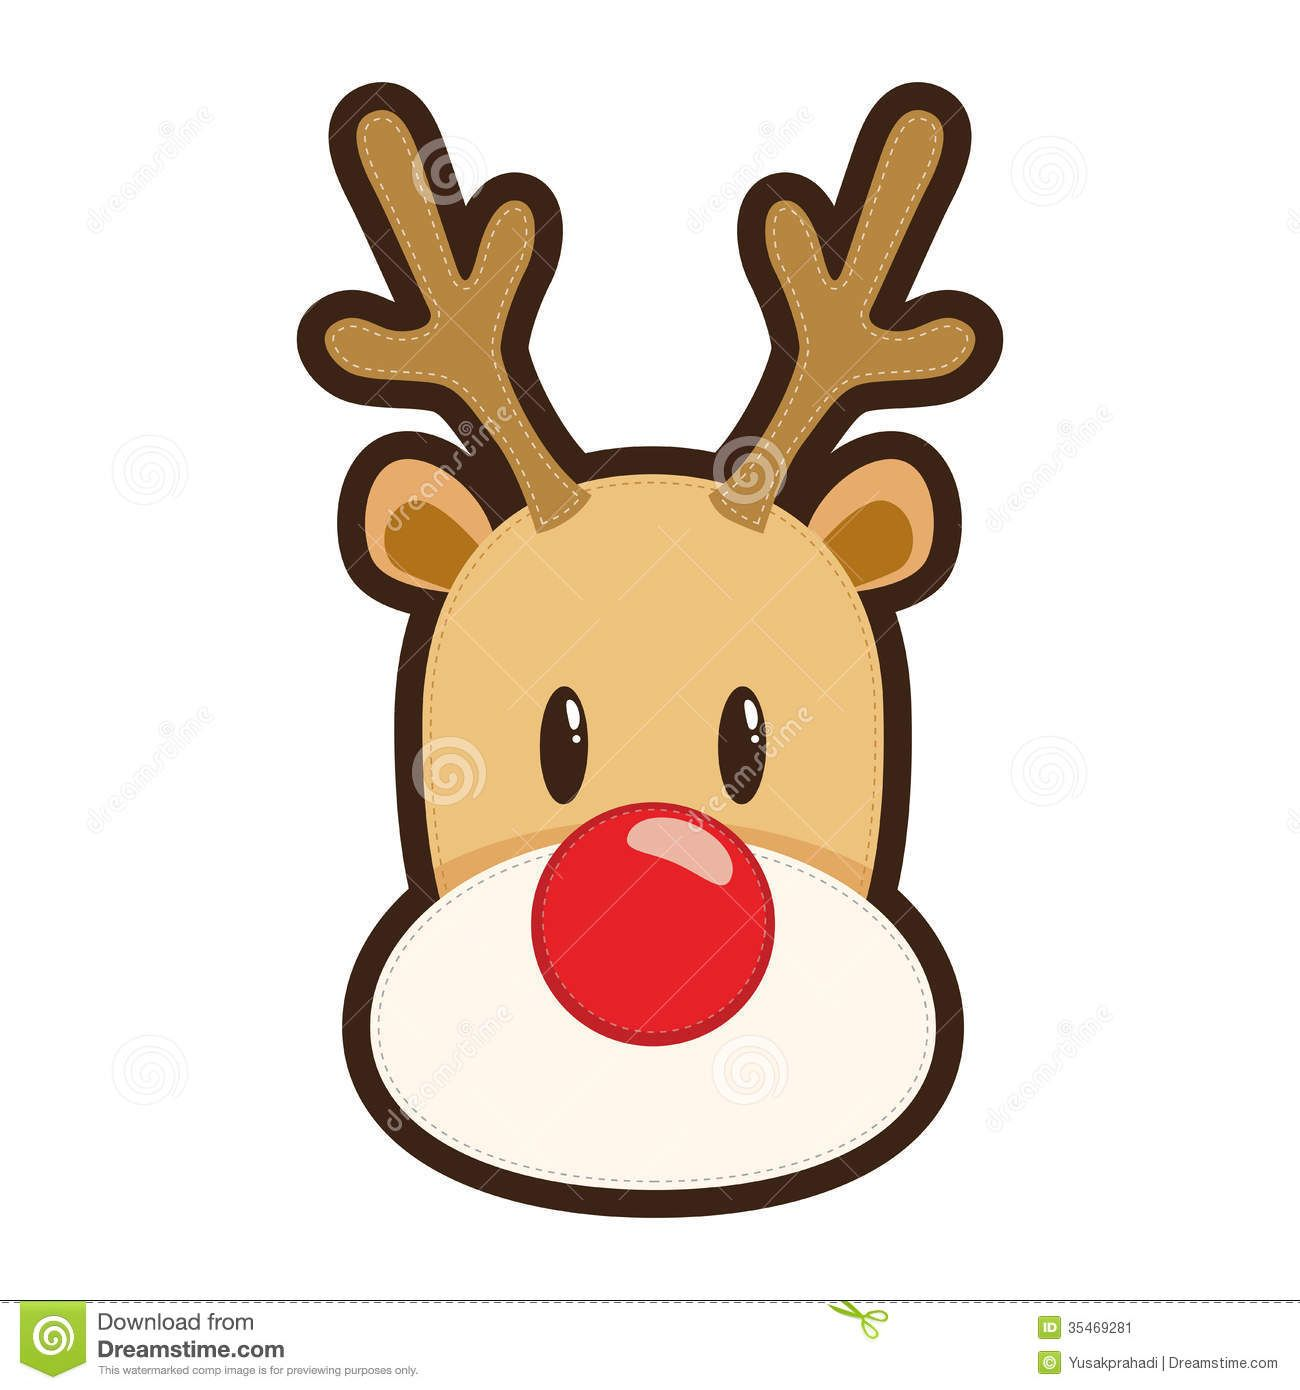 Animated christmas decorations clipart - Cartoon Illustration Of Rudolph The Red Nosed Reindeer White